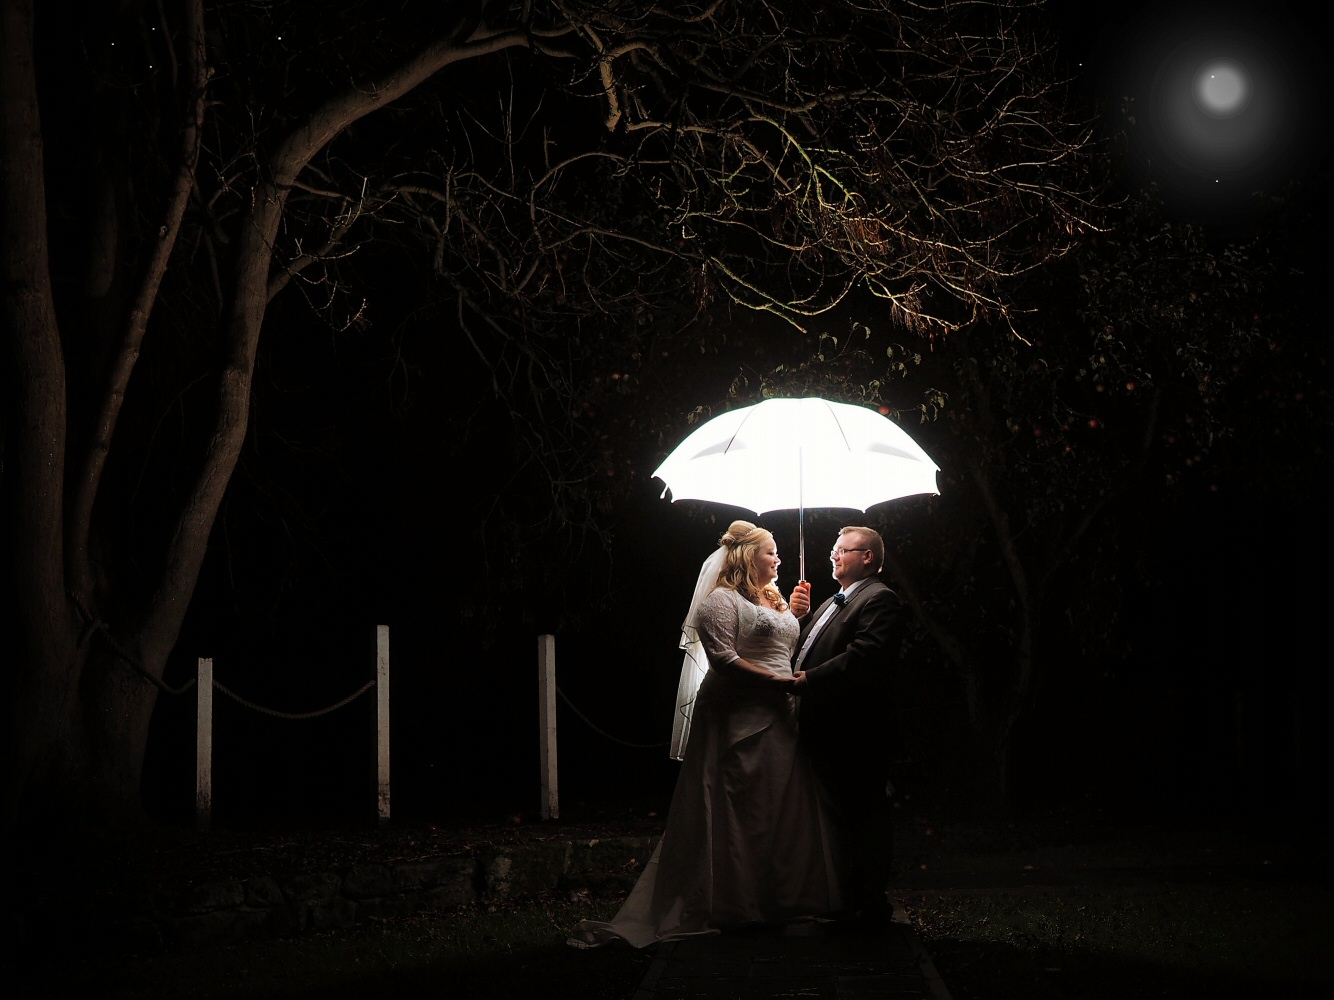 Wedding photographer covering Cheshire